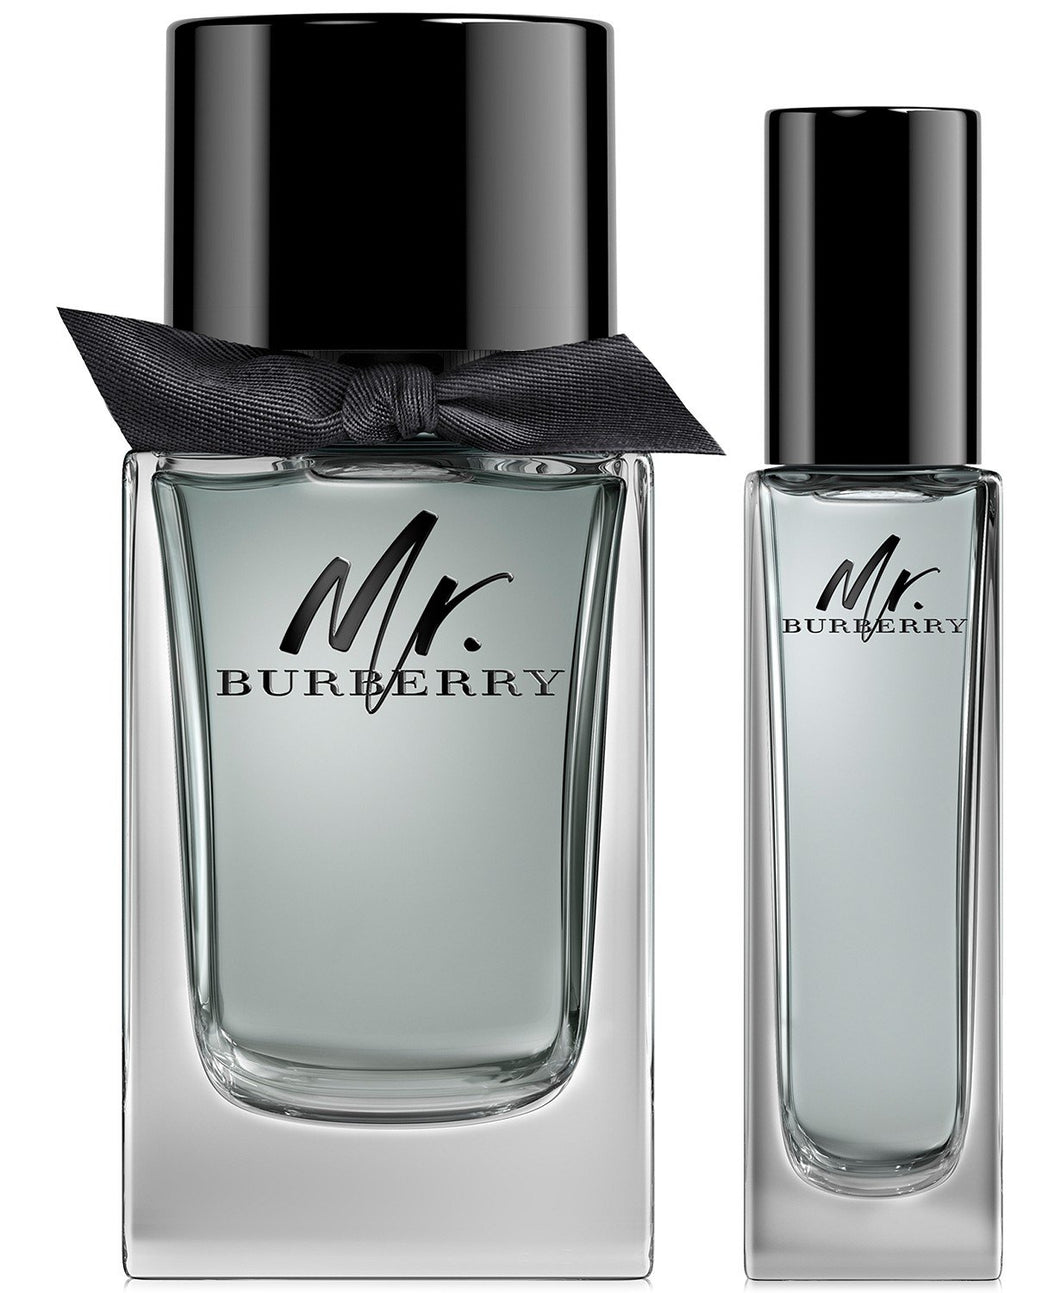 mr. burberry men's gift set 2 pcs eau de toilette -alwaysspecialgifts.com